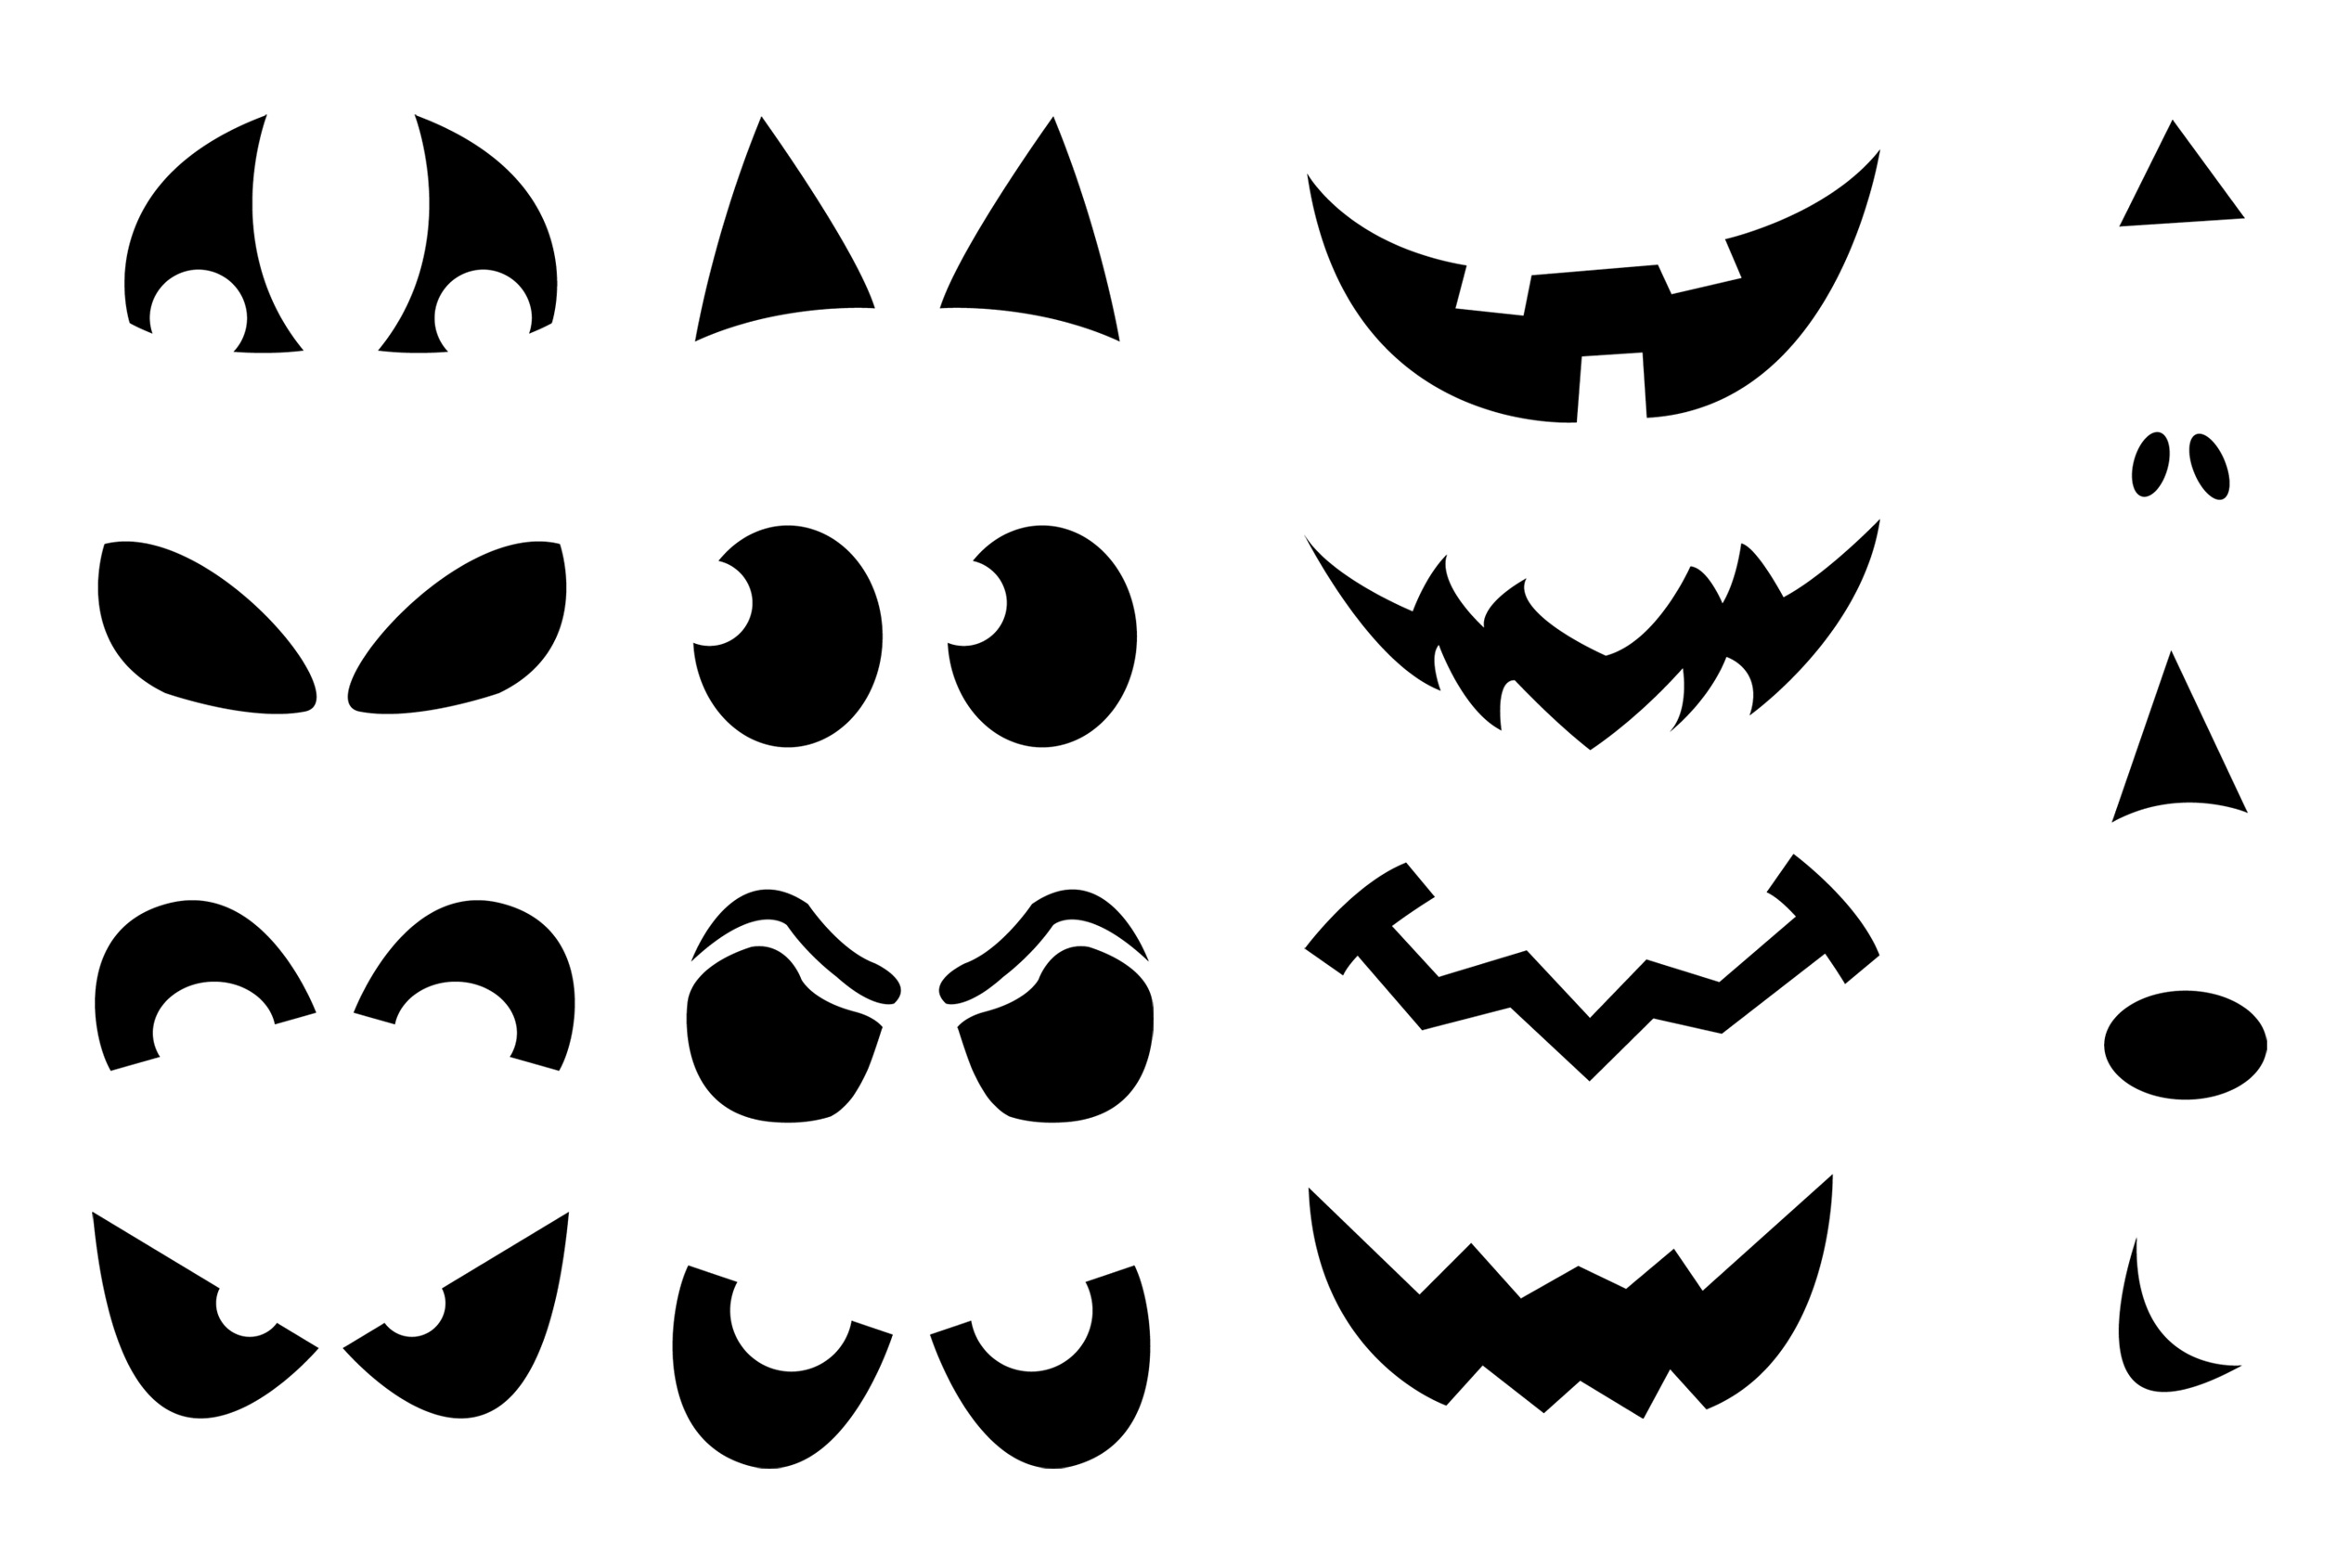 Printable Pumpkin Carving Cutouts For Halloween I Am Krsitin